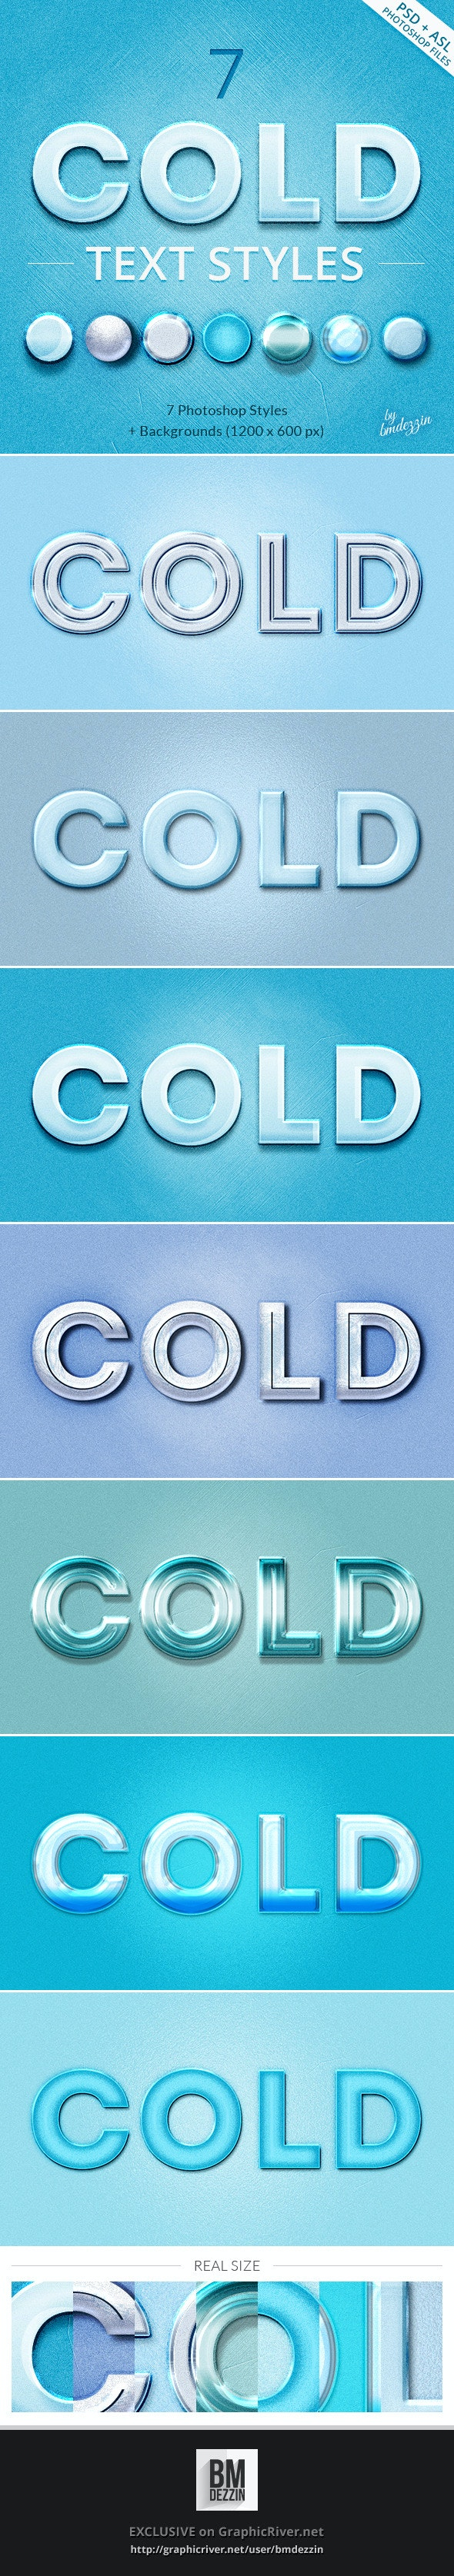 Cold Text Styles - Text Effects Styles